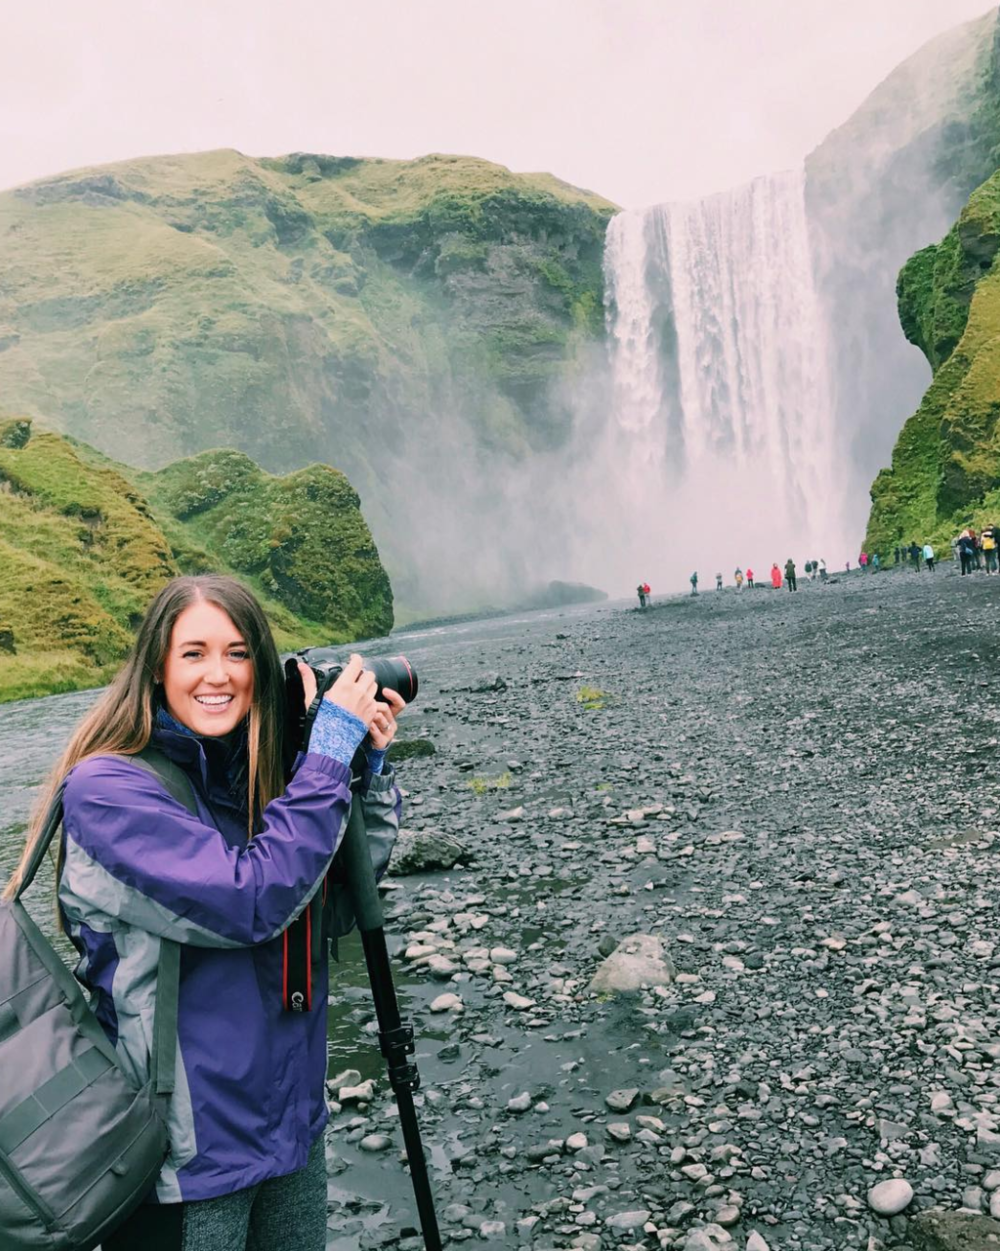 katherine_mendieta_iceland_waterfalls_travel_videographer.png